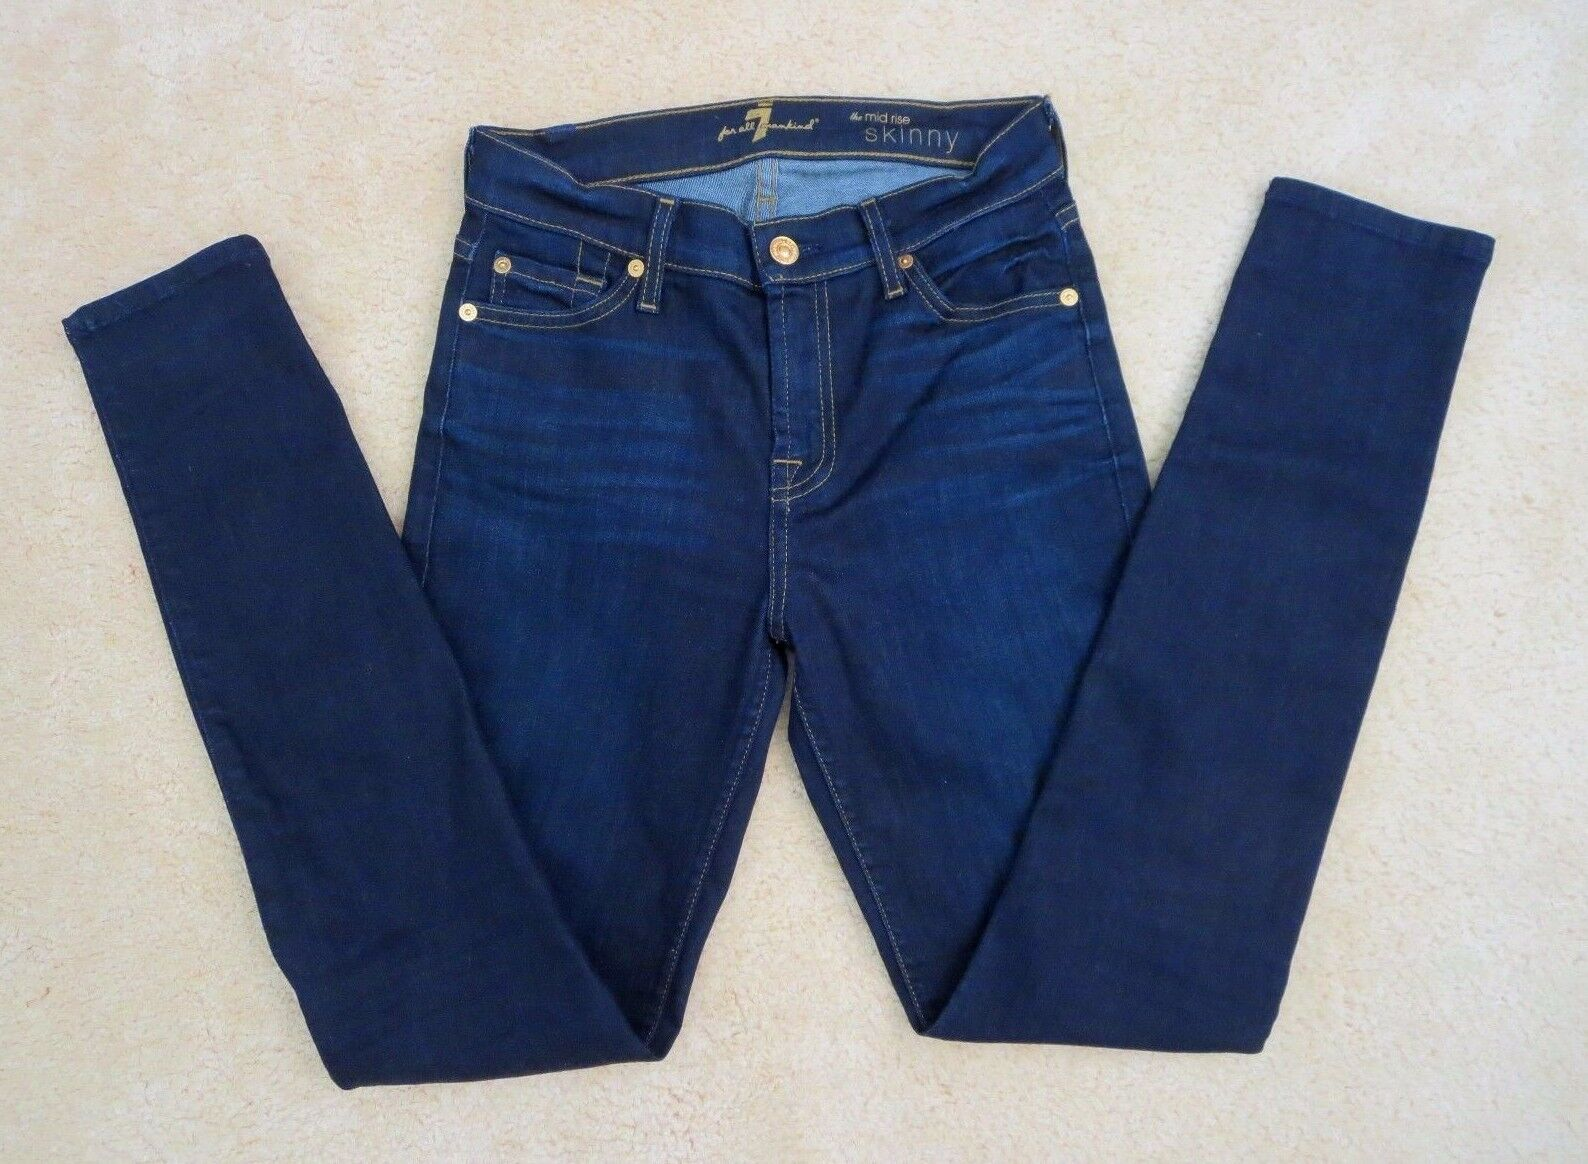 7 For All Mankind Womens Skinny Jeans Size 25 Mid Rise Dark Wash Pants